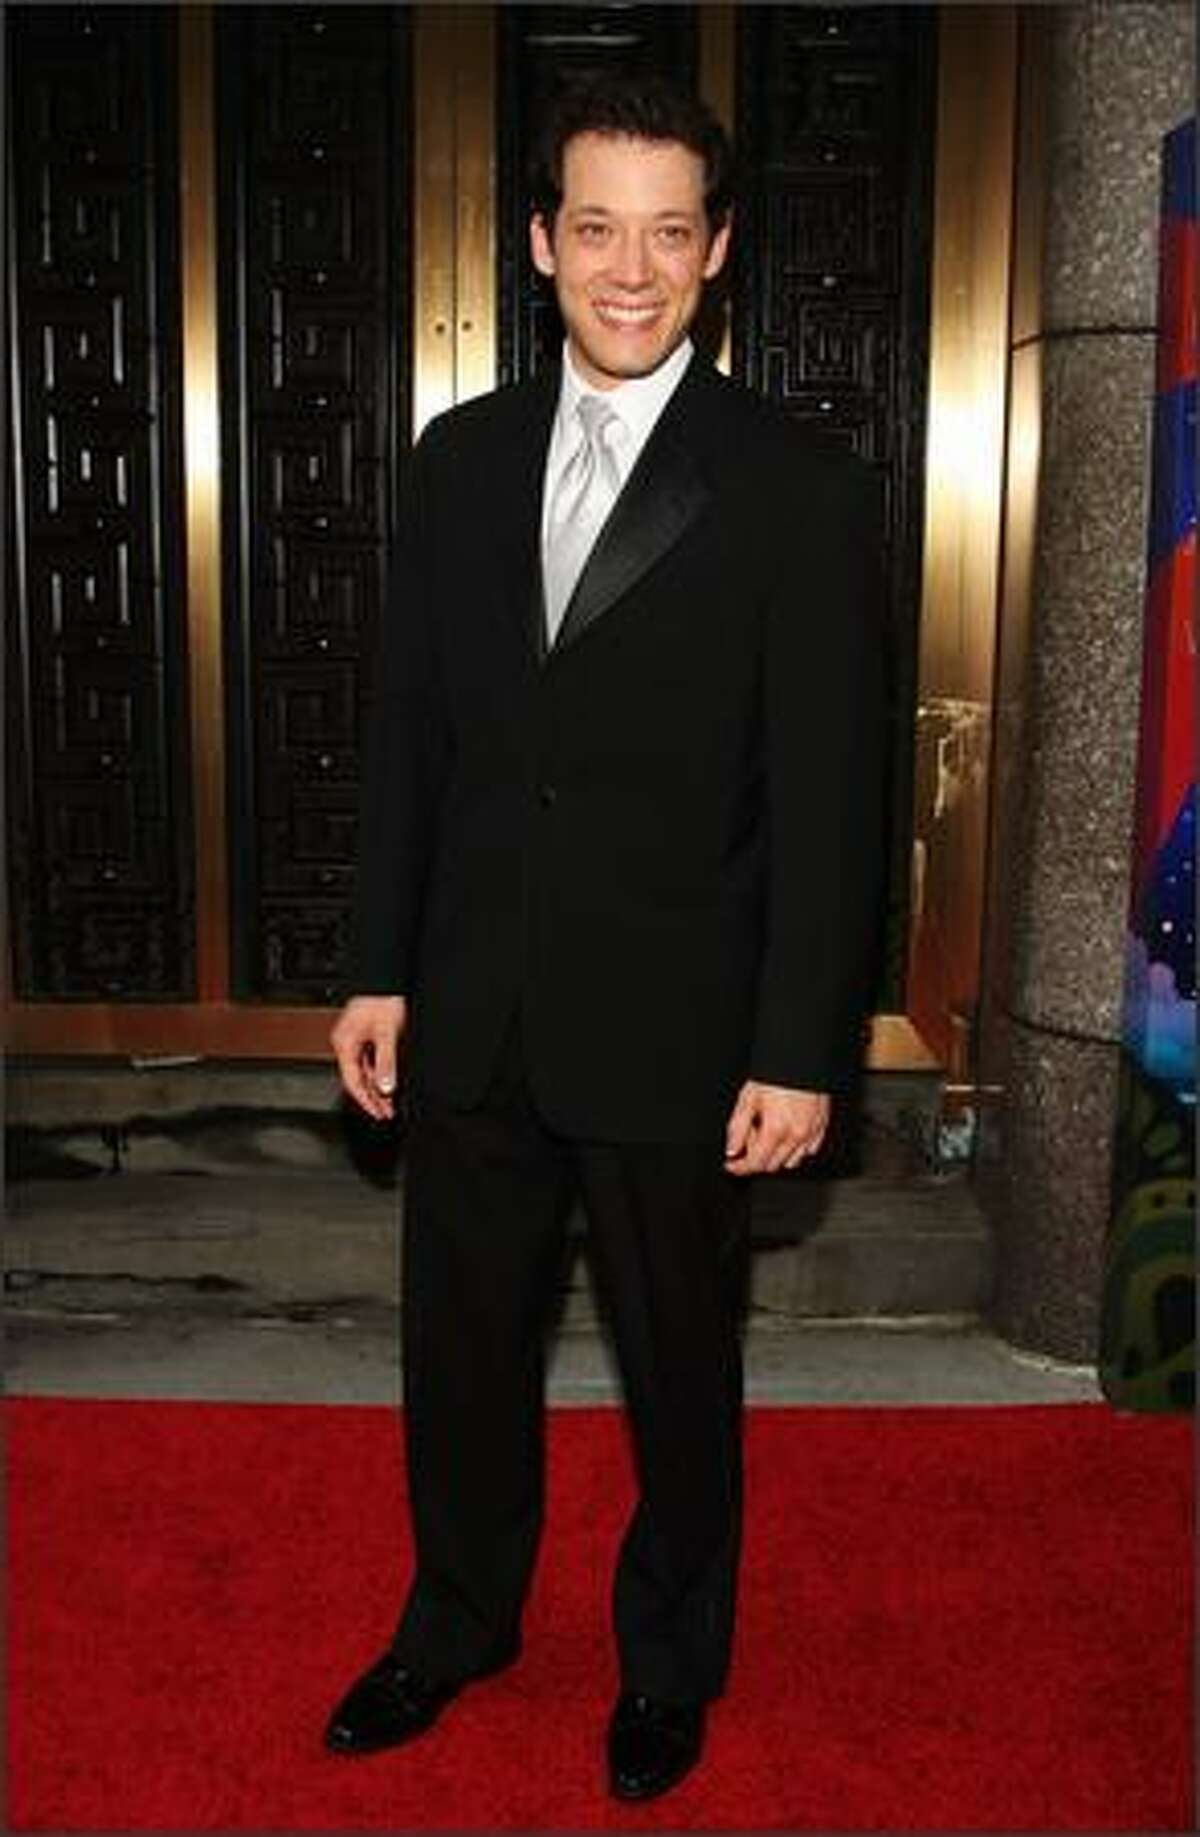 Actor John Tartaglia attends the 63rd Annual Tony Awards at Radio City Music Hall on Sunday in New York City.